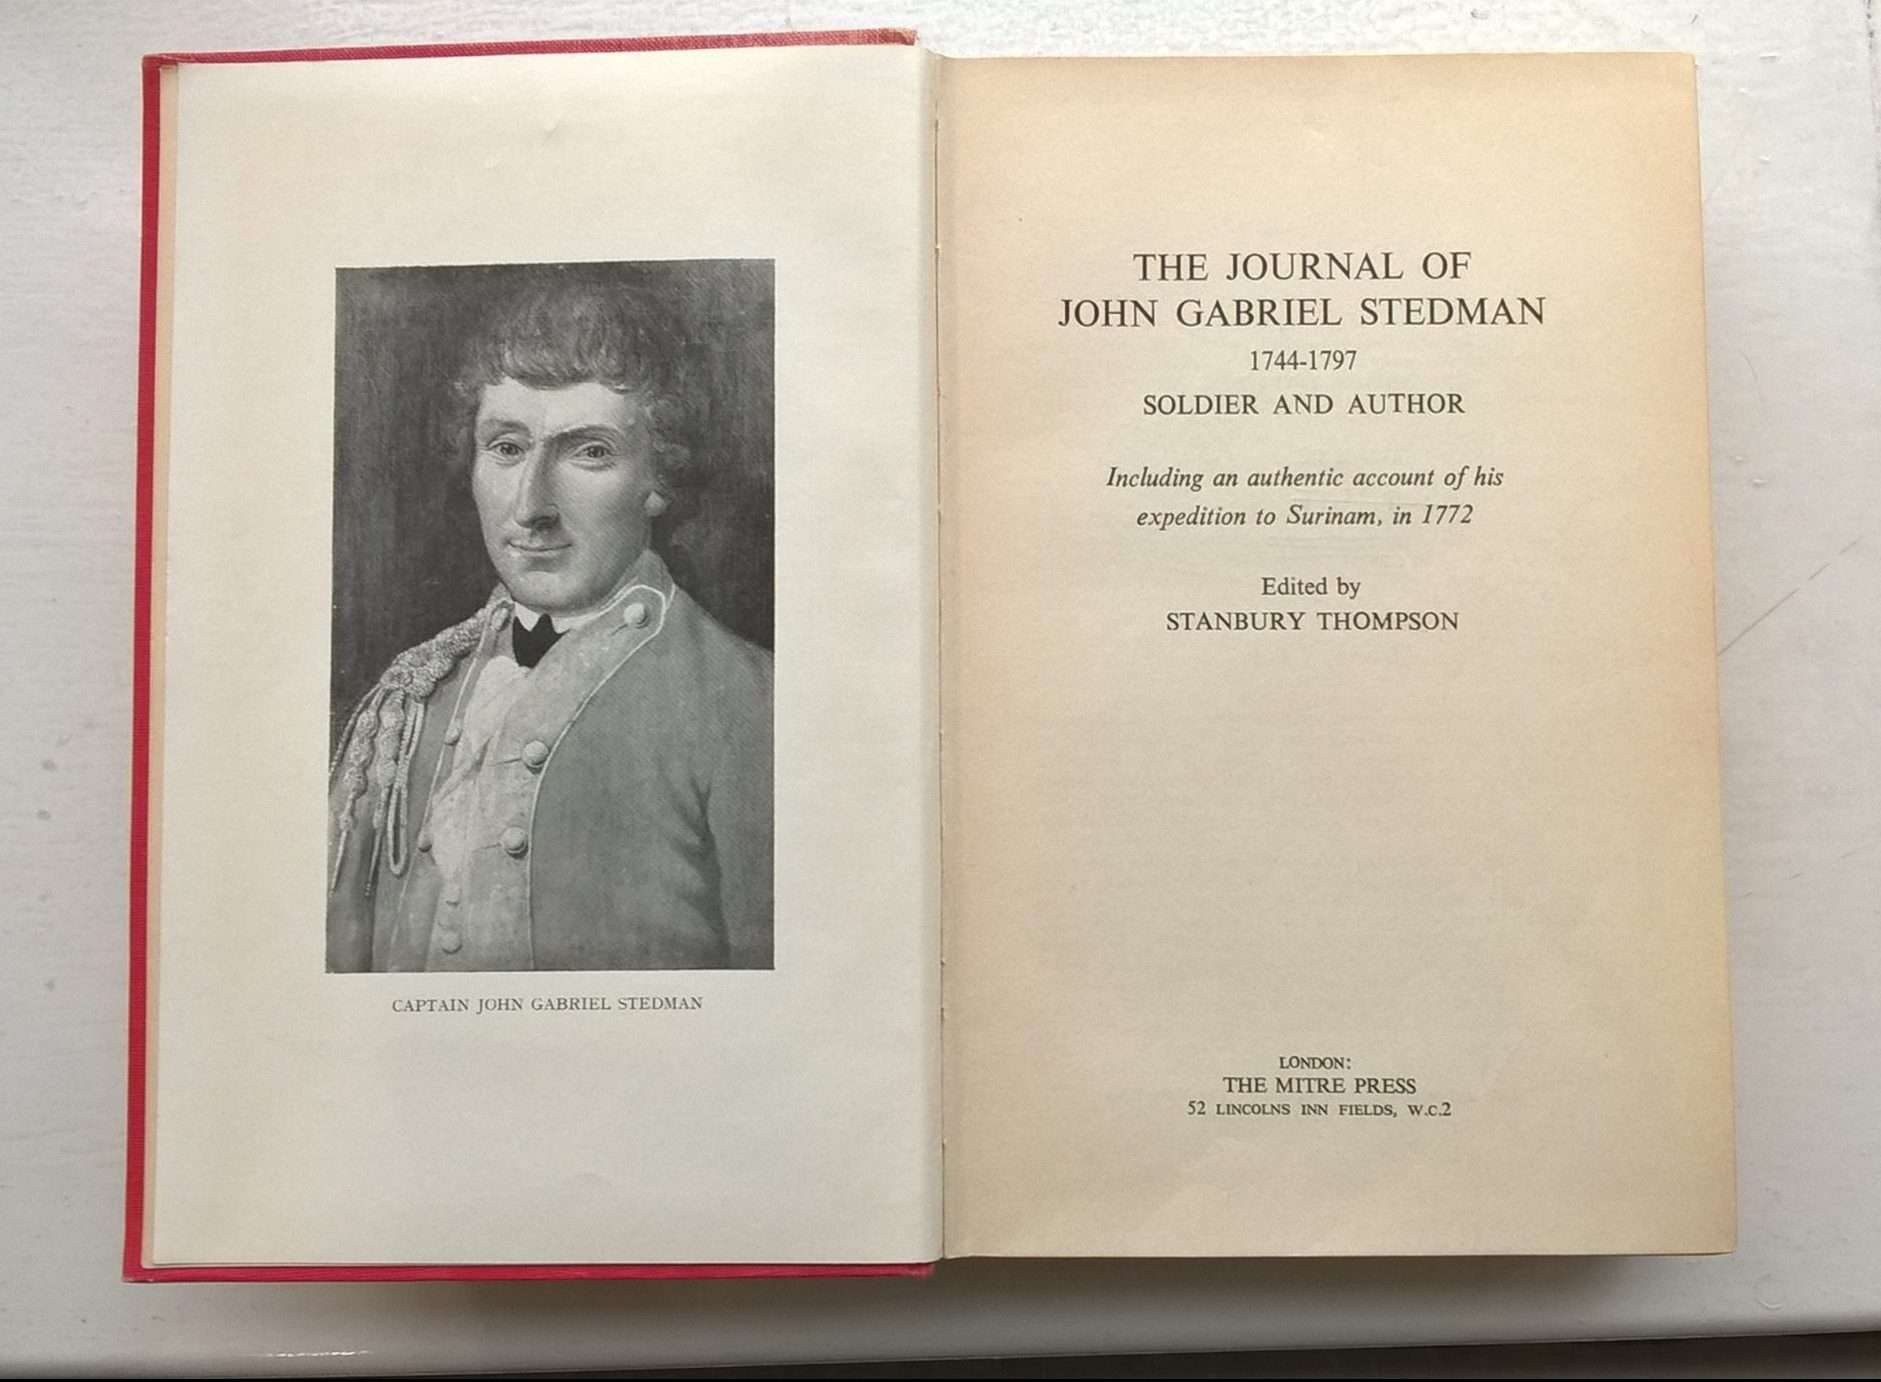 "Photo of the opening pages of a book. On the right hand side is a portrait of John Gabriel Stedman. He is wearing a uniform, and possibly a wig. He has a long curved nose, and is smiling slightly. On the right hand side is the text. It reads: ""The Journal of John Gabriel Stedman 1744 - 1797 Soldier and Author, including an authentic account of his expedition to Surinam, in 1772. Edited by Stanbury Thompson. London: The Mitre Press . 53 Lincolns Inn Fields. w.c.2."